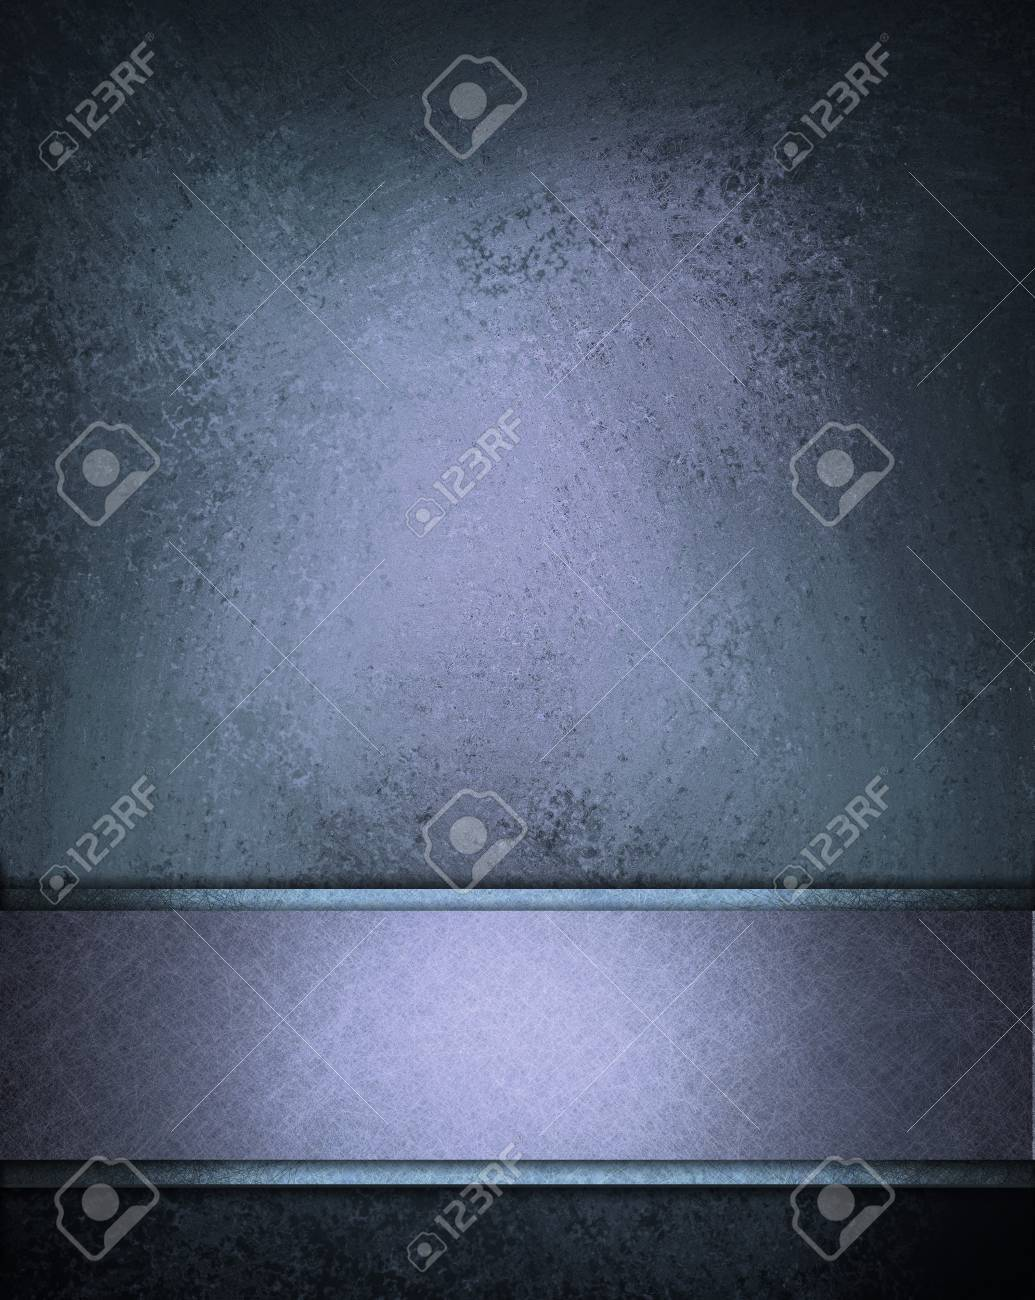 elegant blue background with abstract vintage grunge background wall texture or web template background of banner bar for text or title, fancy blue wallpaper wall or poster layout design for brochure Stock Photo - 13861982